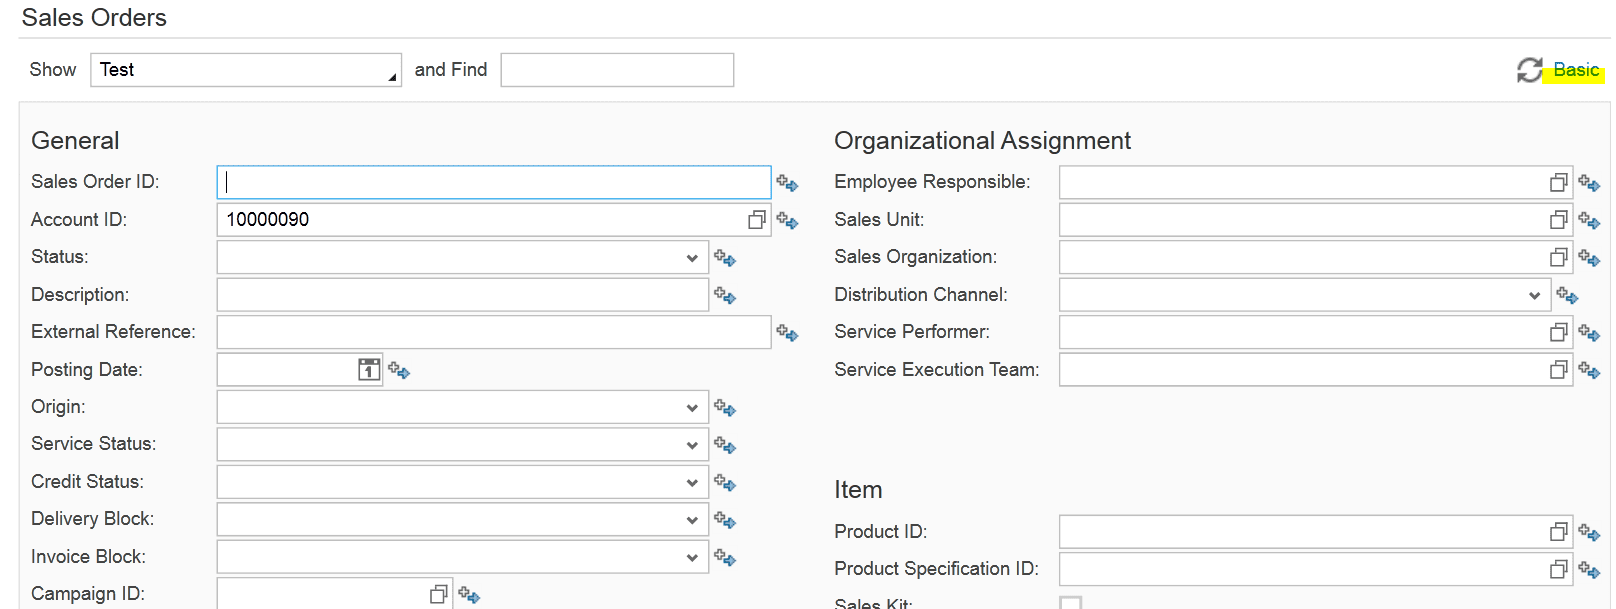 create queries in SAP ByDesign